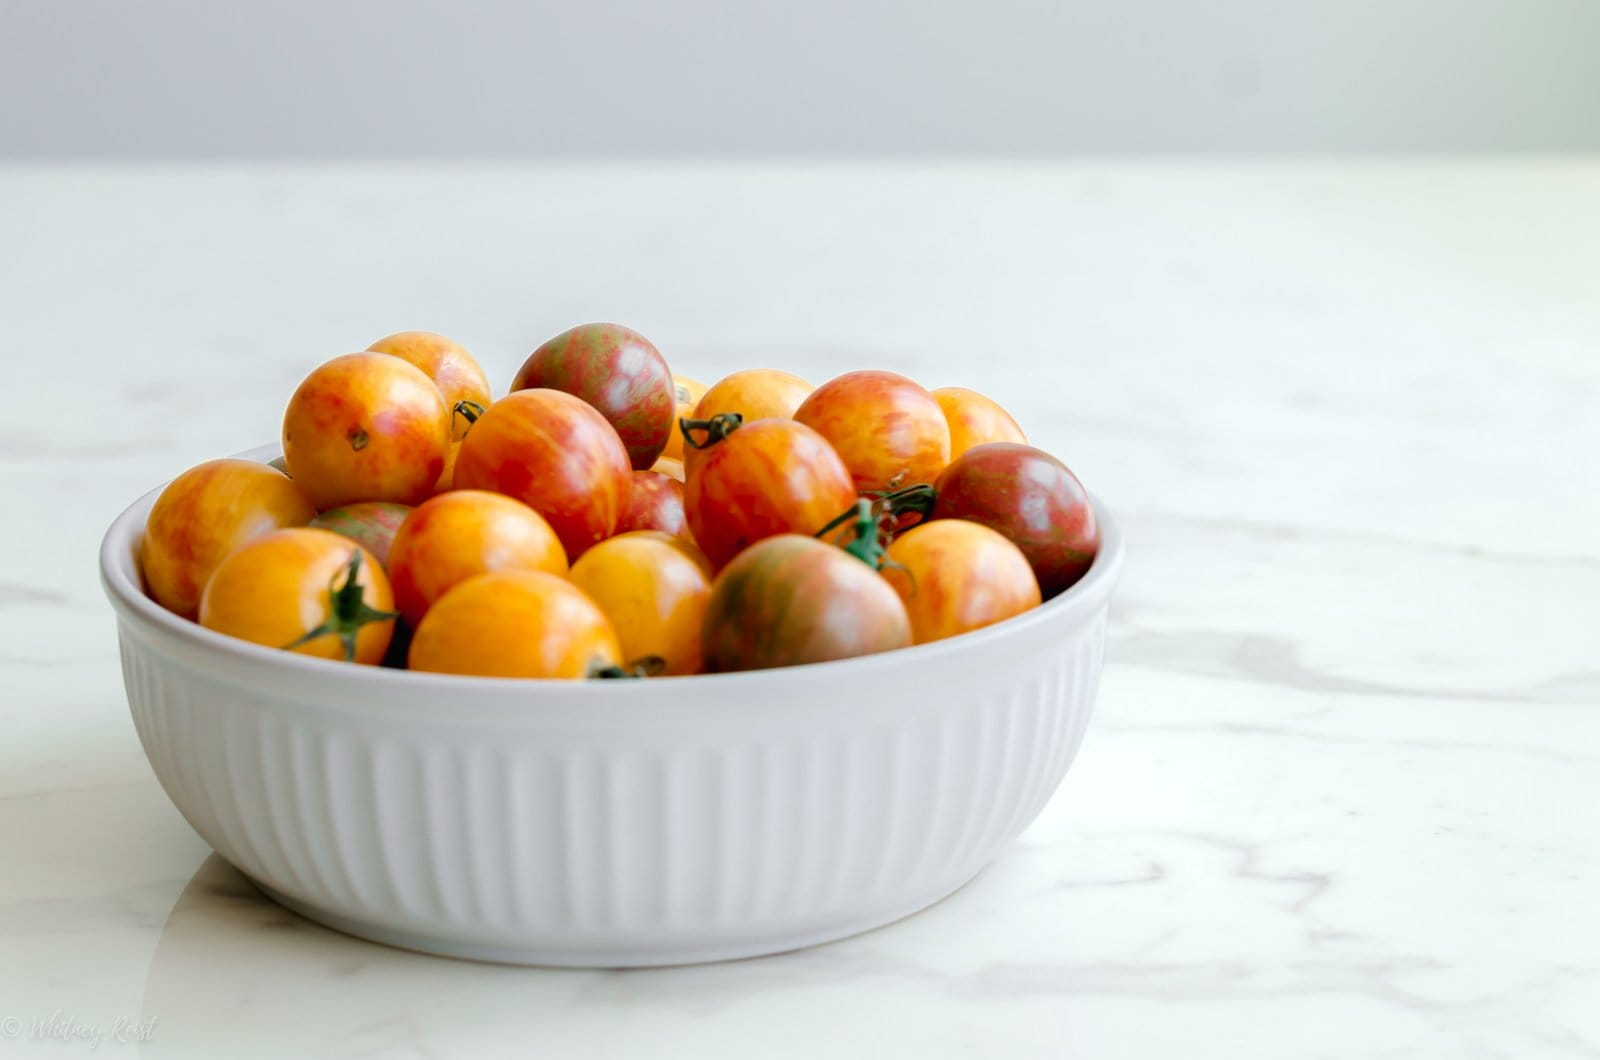 A side angle of tomatoes in a white bowl on a white marble countertop.